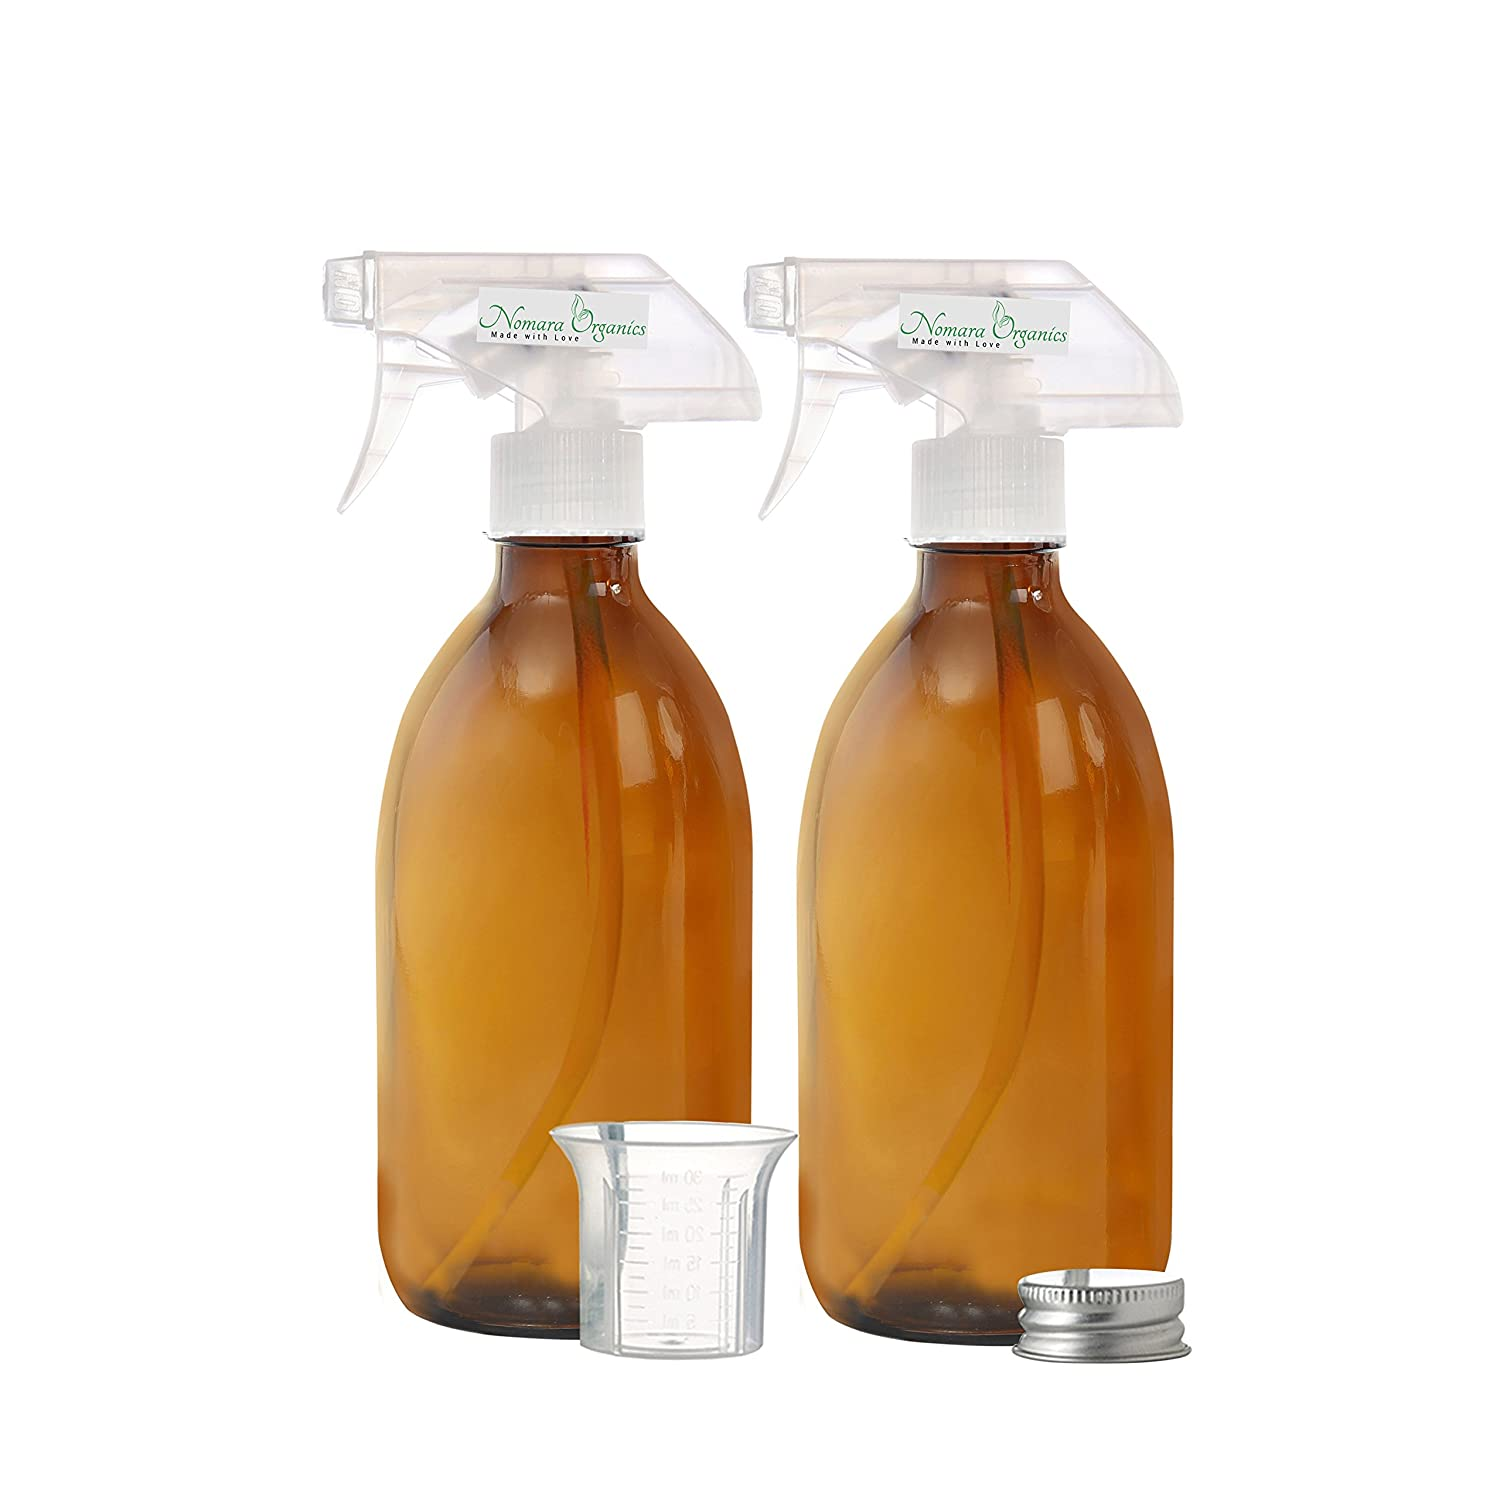 2 x 300ML BPA-FREE AMBER GLASS SPRAY BOTTLES by Nomara Organics(™). Pack of 2 x Amber Glass Bottle fitted with Leak Proof, Non-Drip, BPA-FREE, Trigger Sprayers/Atomizers + 1 x BPA-Free Graduated Beaker + 1 x Leak Proof Silver caps, Multi-purpose, Refillab